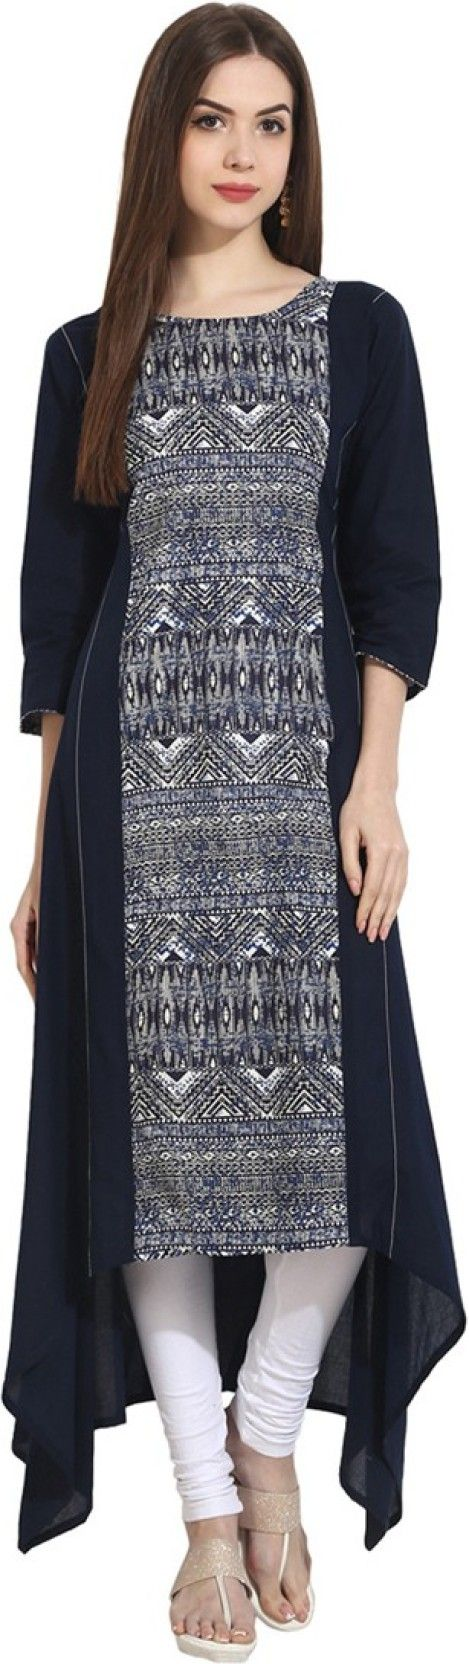 Buy Nayo Printed Women's A-line Kurta  (Multicolor) at Rs. 1049 only